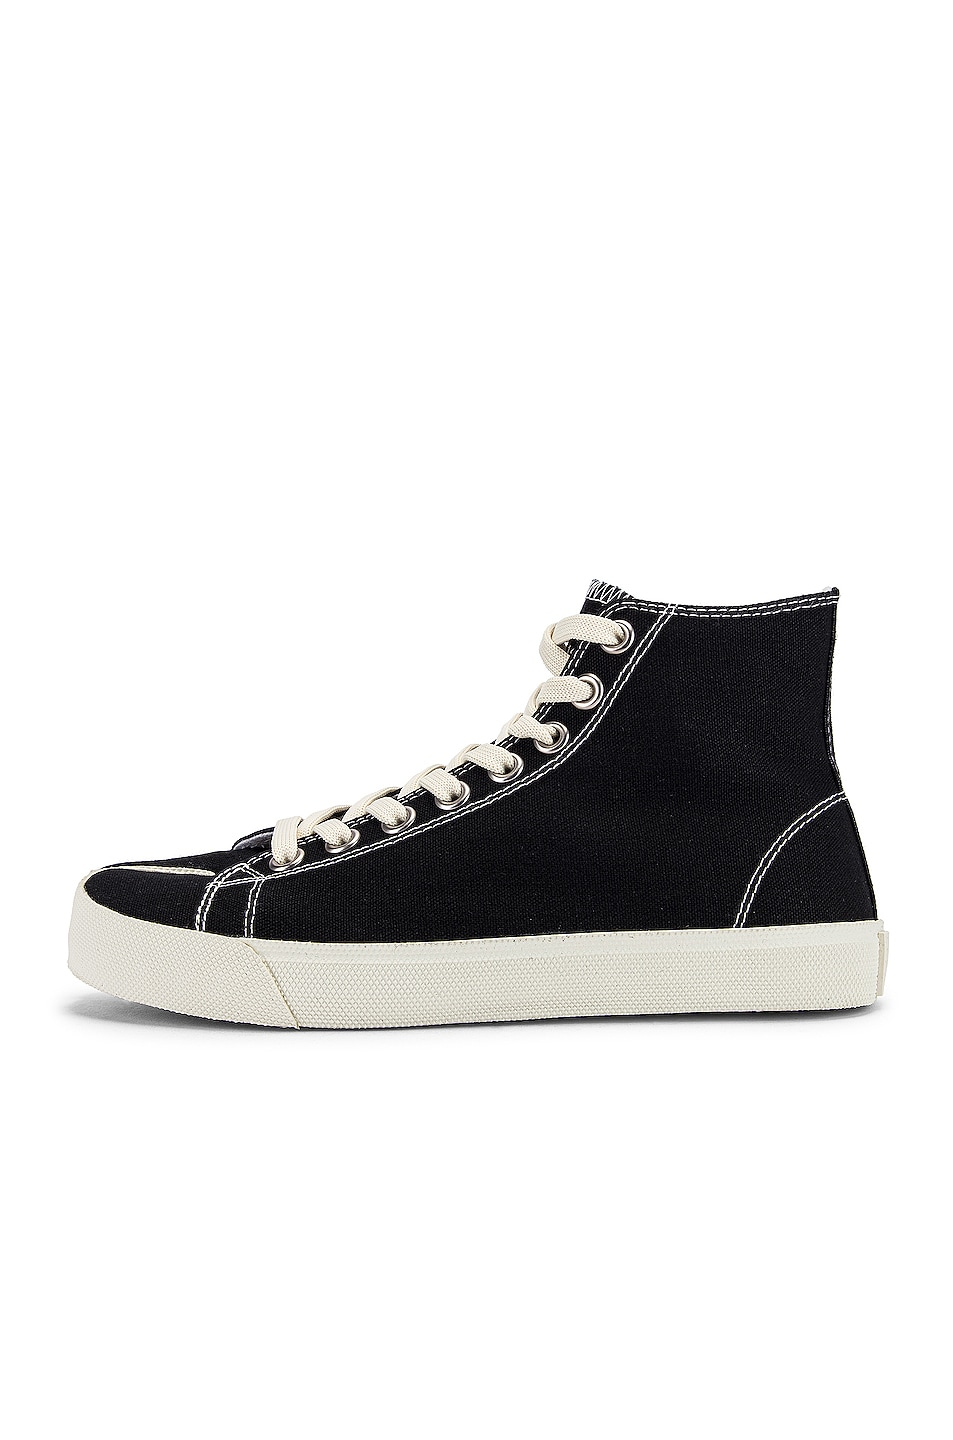 Image 8 of Maison Margiela Tabi High Top Canvas Sneakers in Black